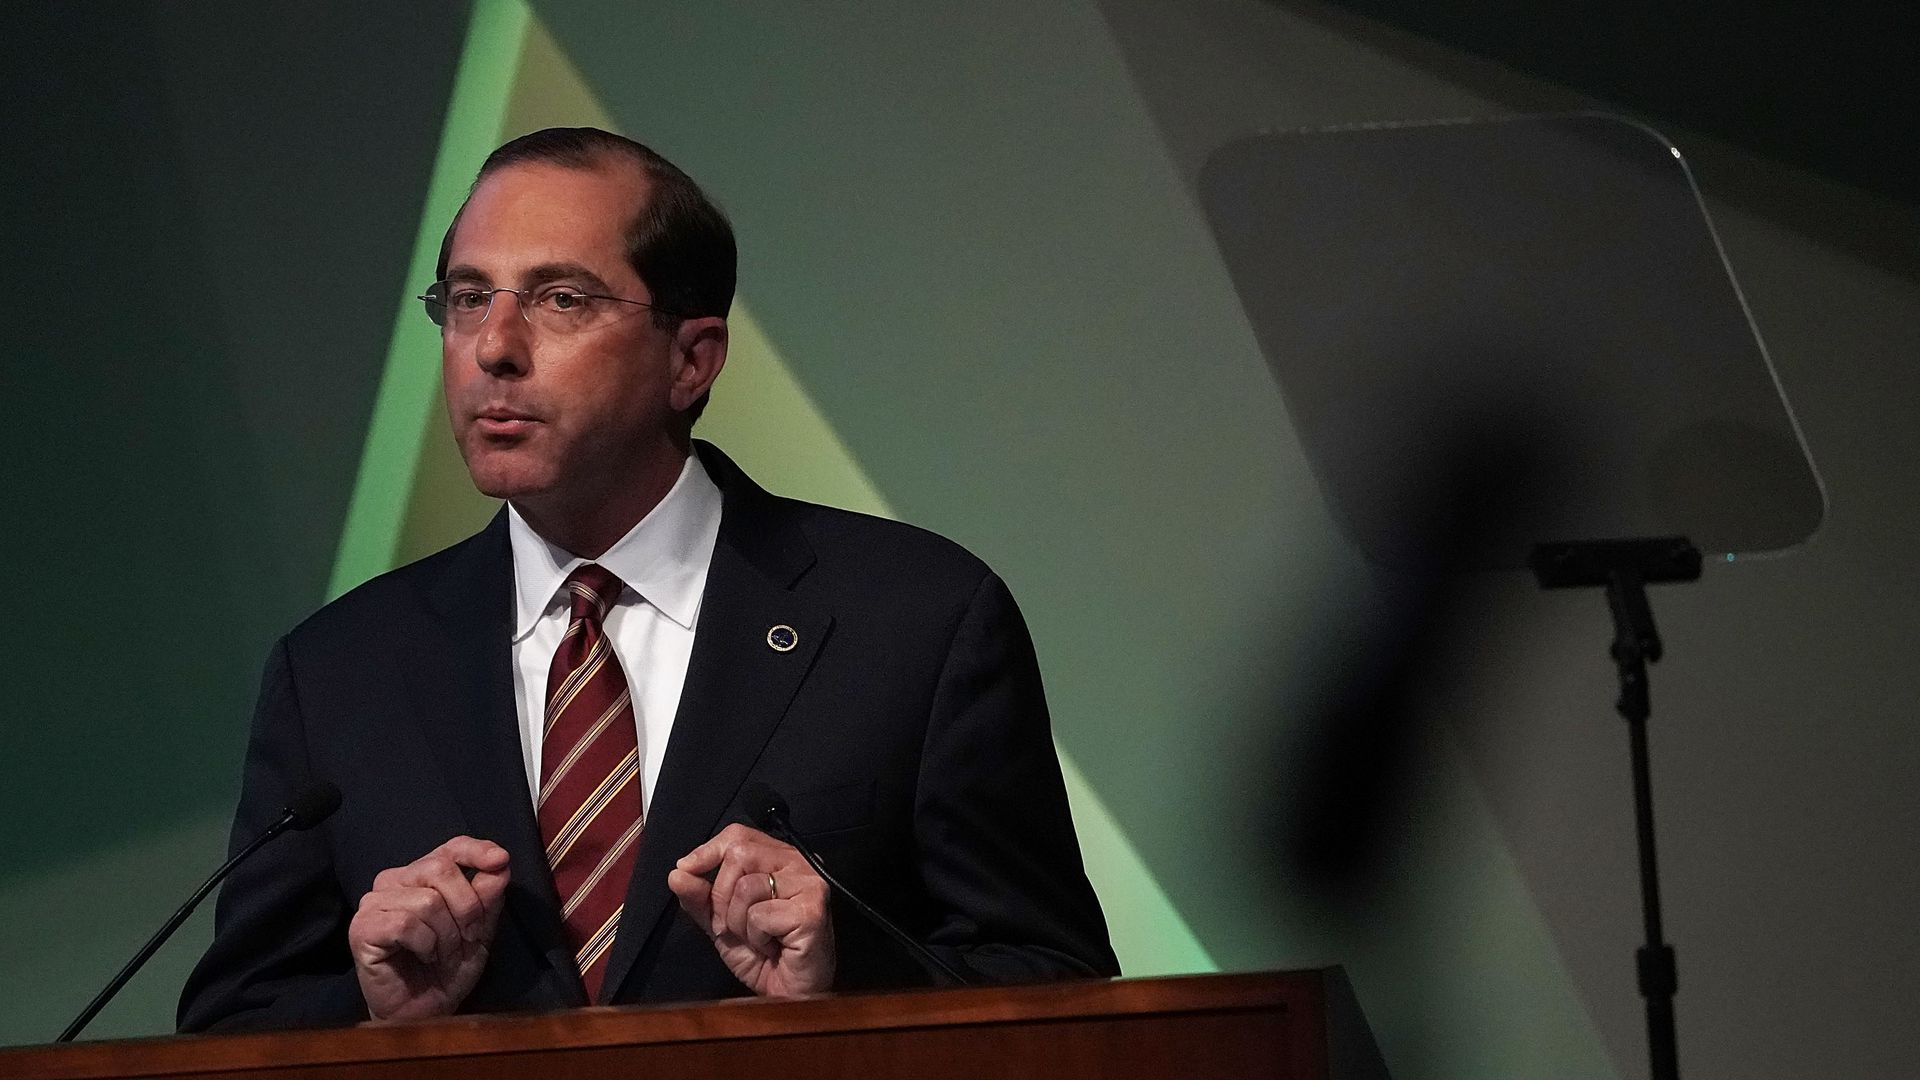 HHS Secretary Alex Azar delivers a speech